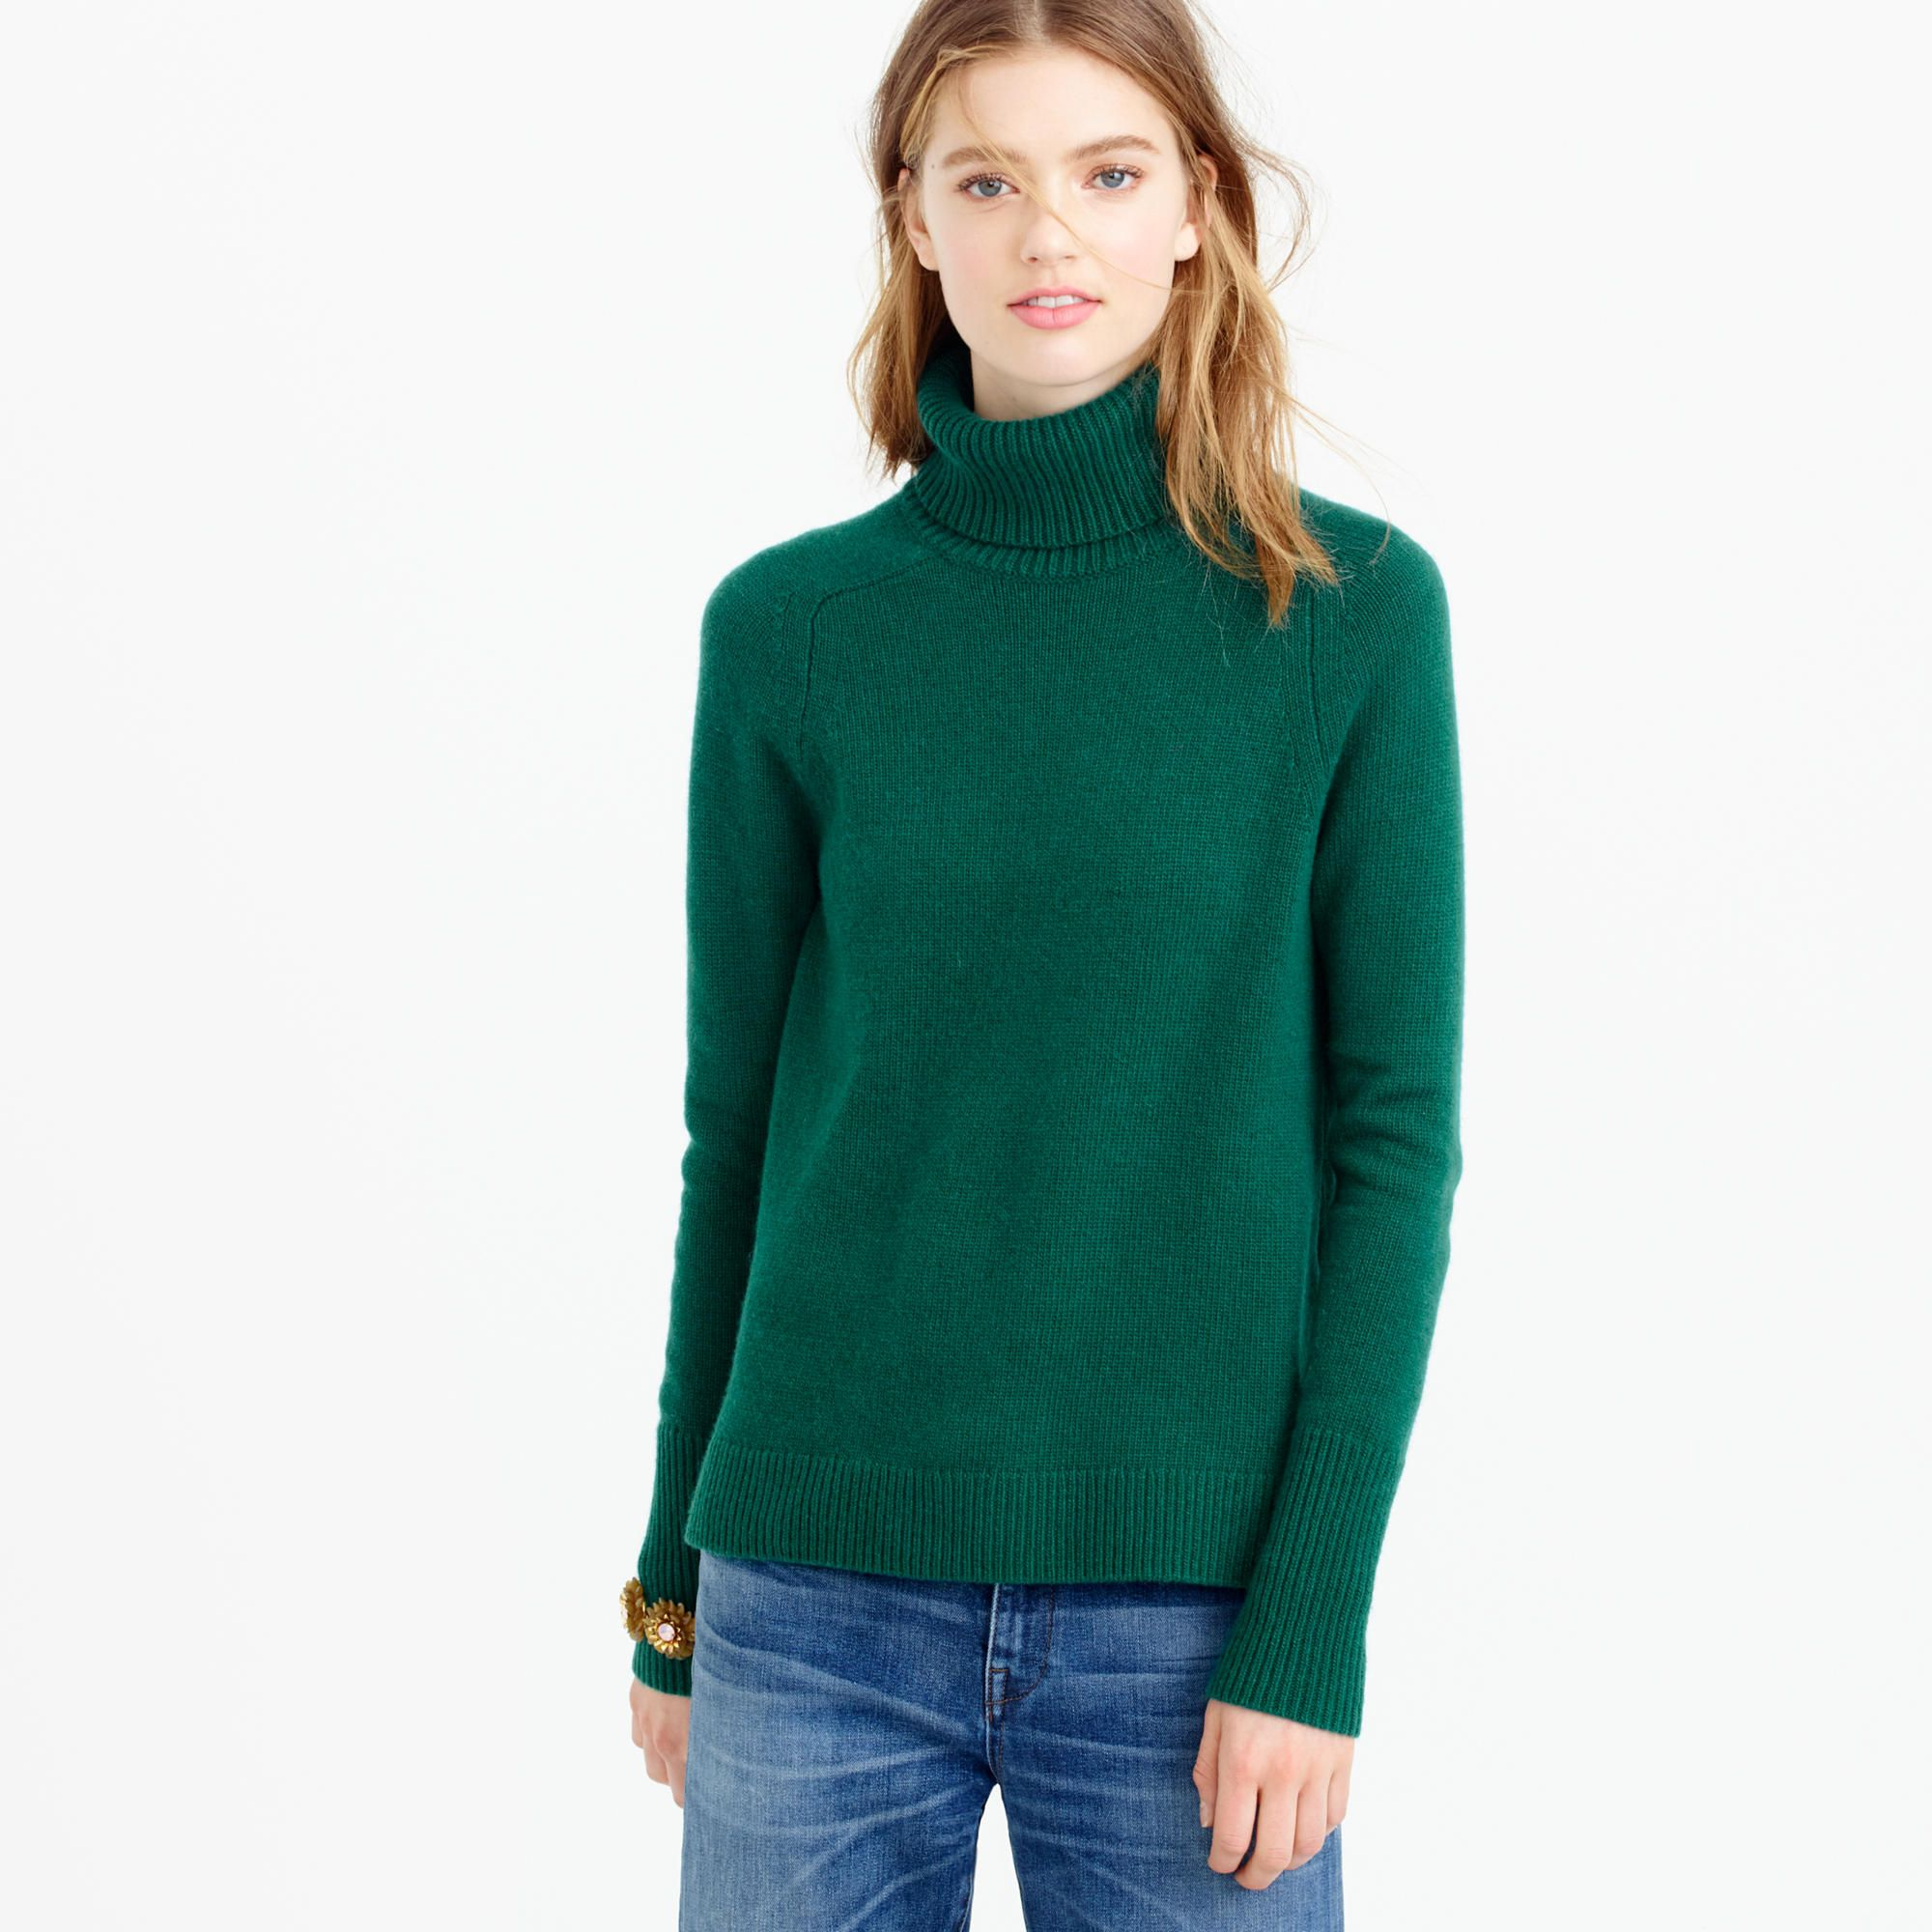 Image result for model wearing cashmere turtle neck sweater | My ...